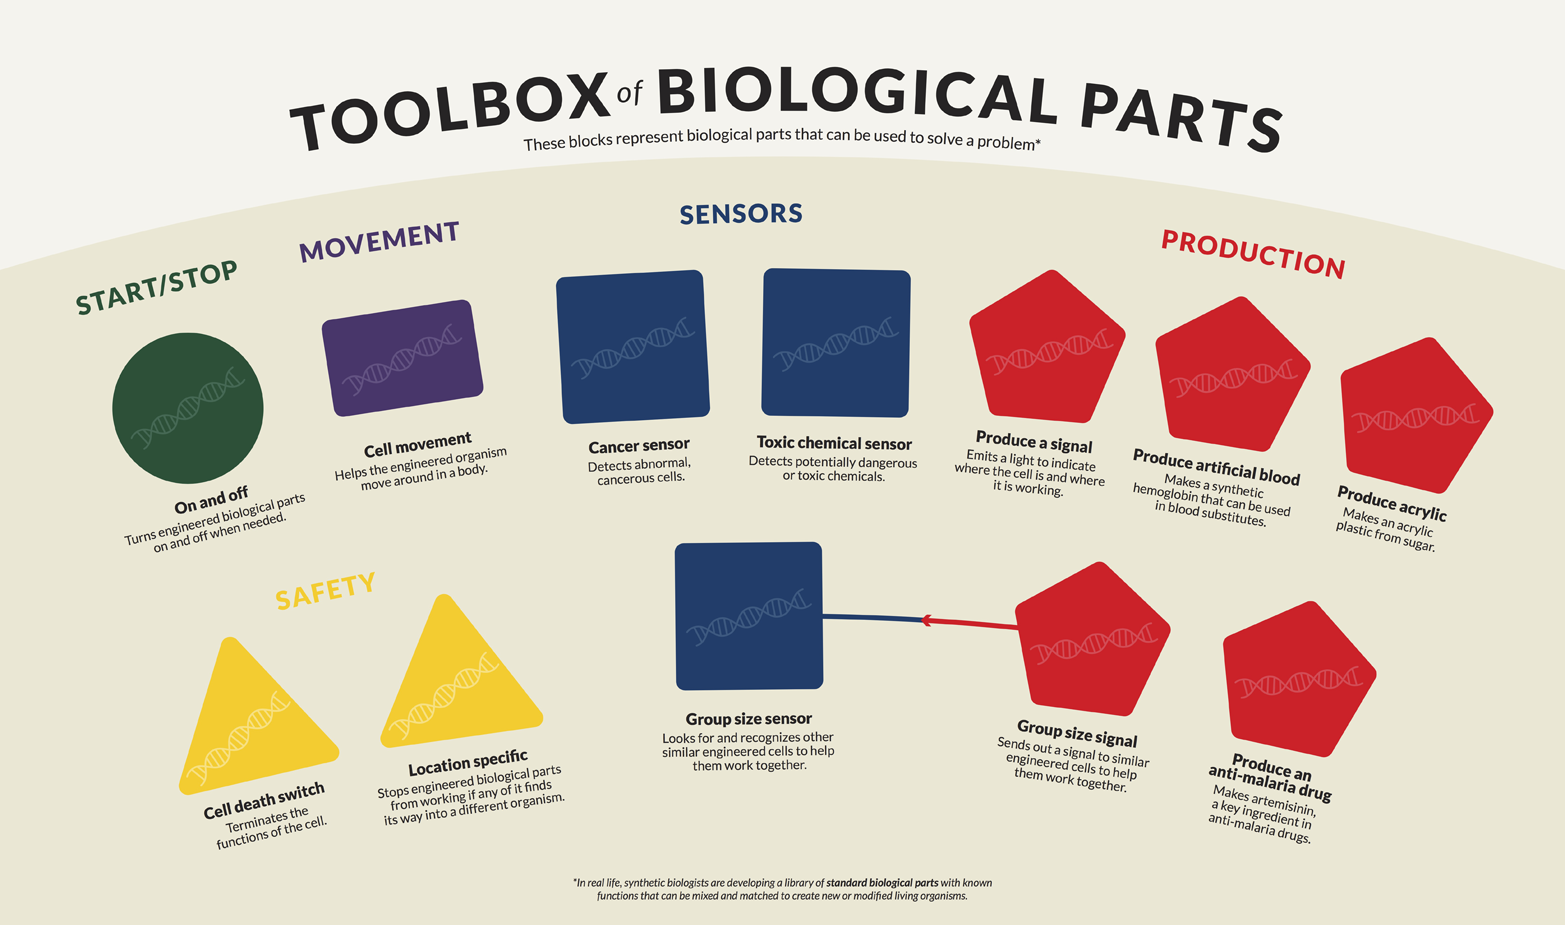 Toolbox of biological parts